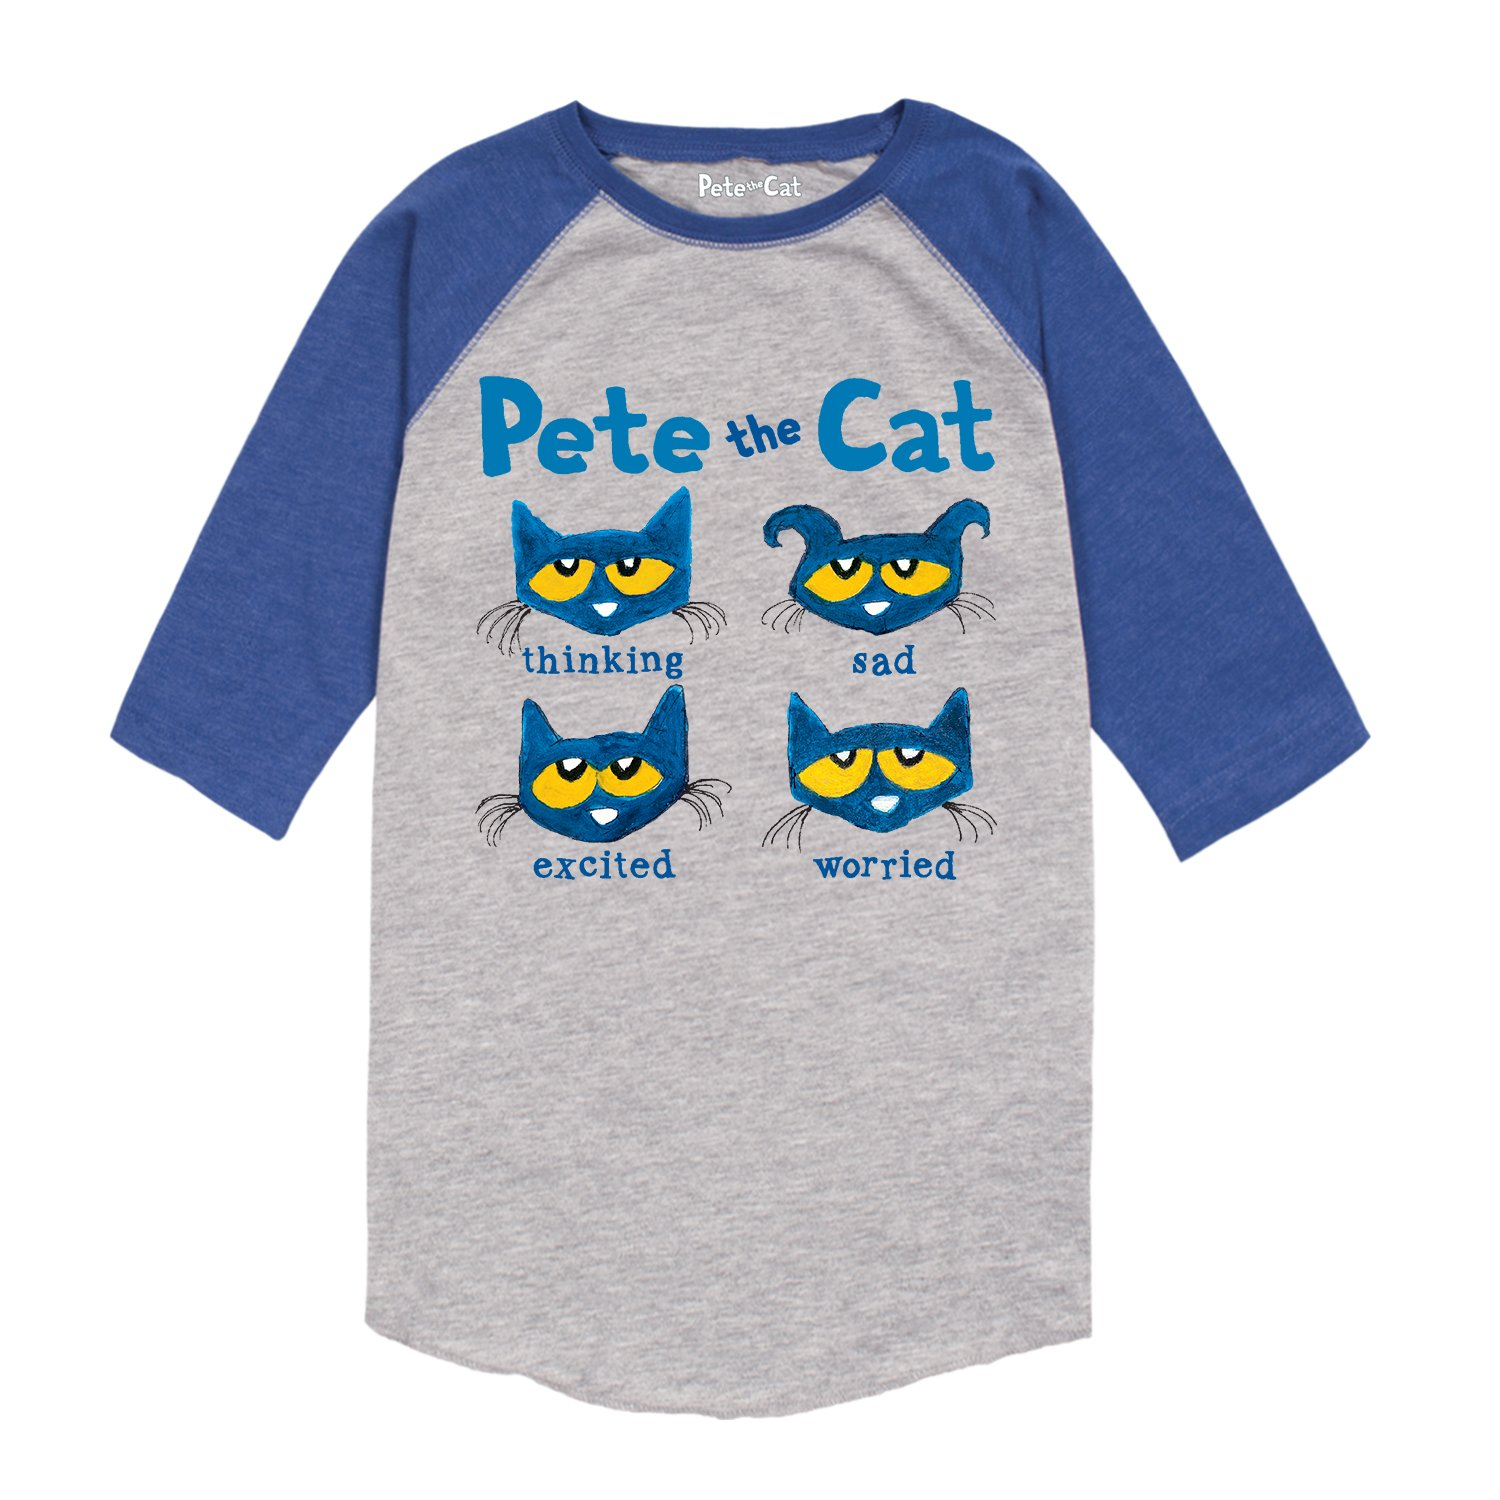 Pete the Cat The Faces of Pete-Toddler Raglan